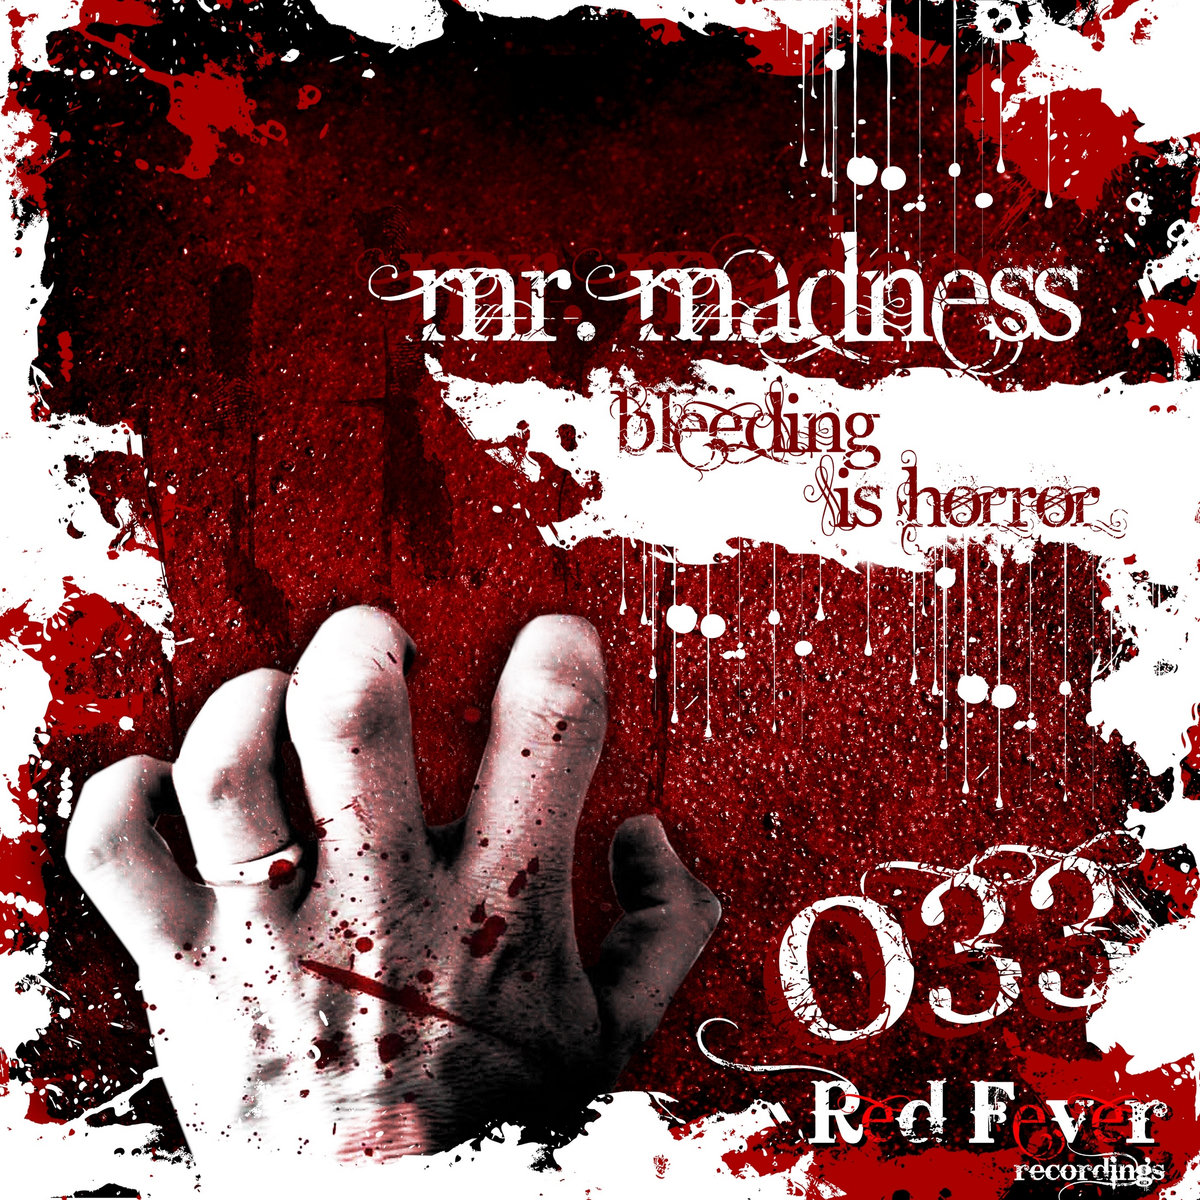 Mr. Madness - Nobody Don't Dance On This @ 'Bleeding Is Horror' album (electronic, gabber)